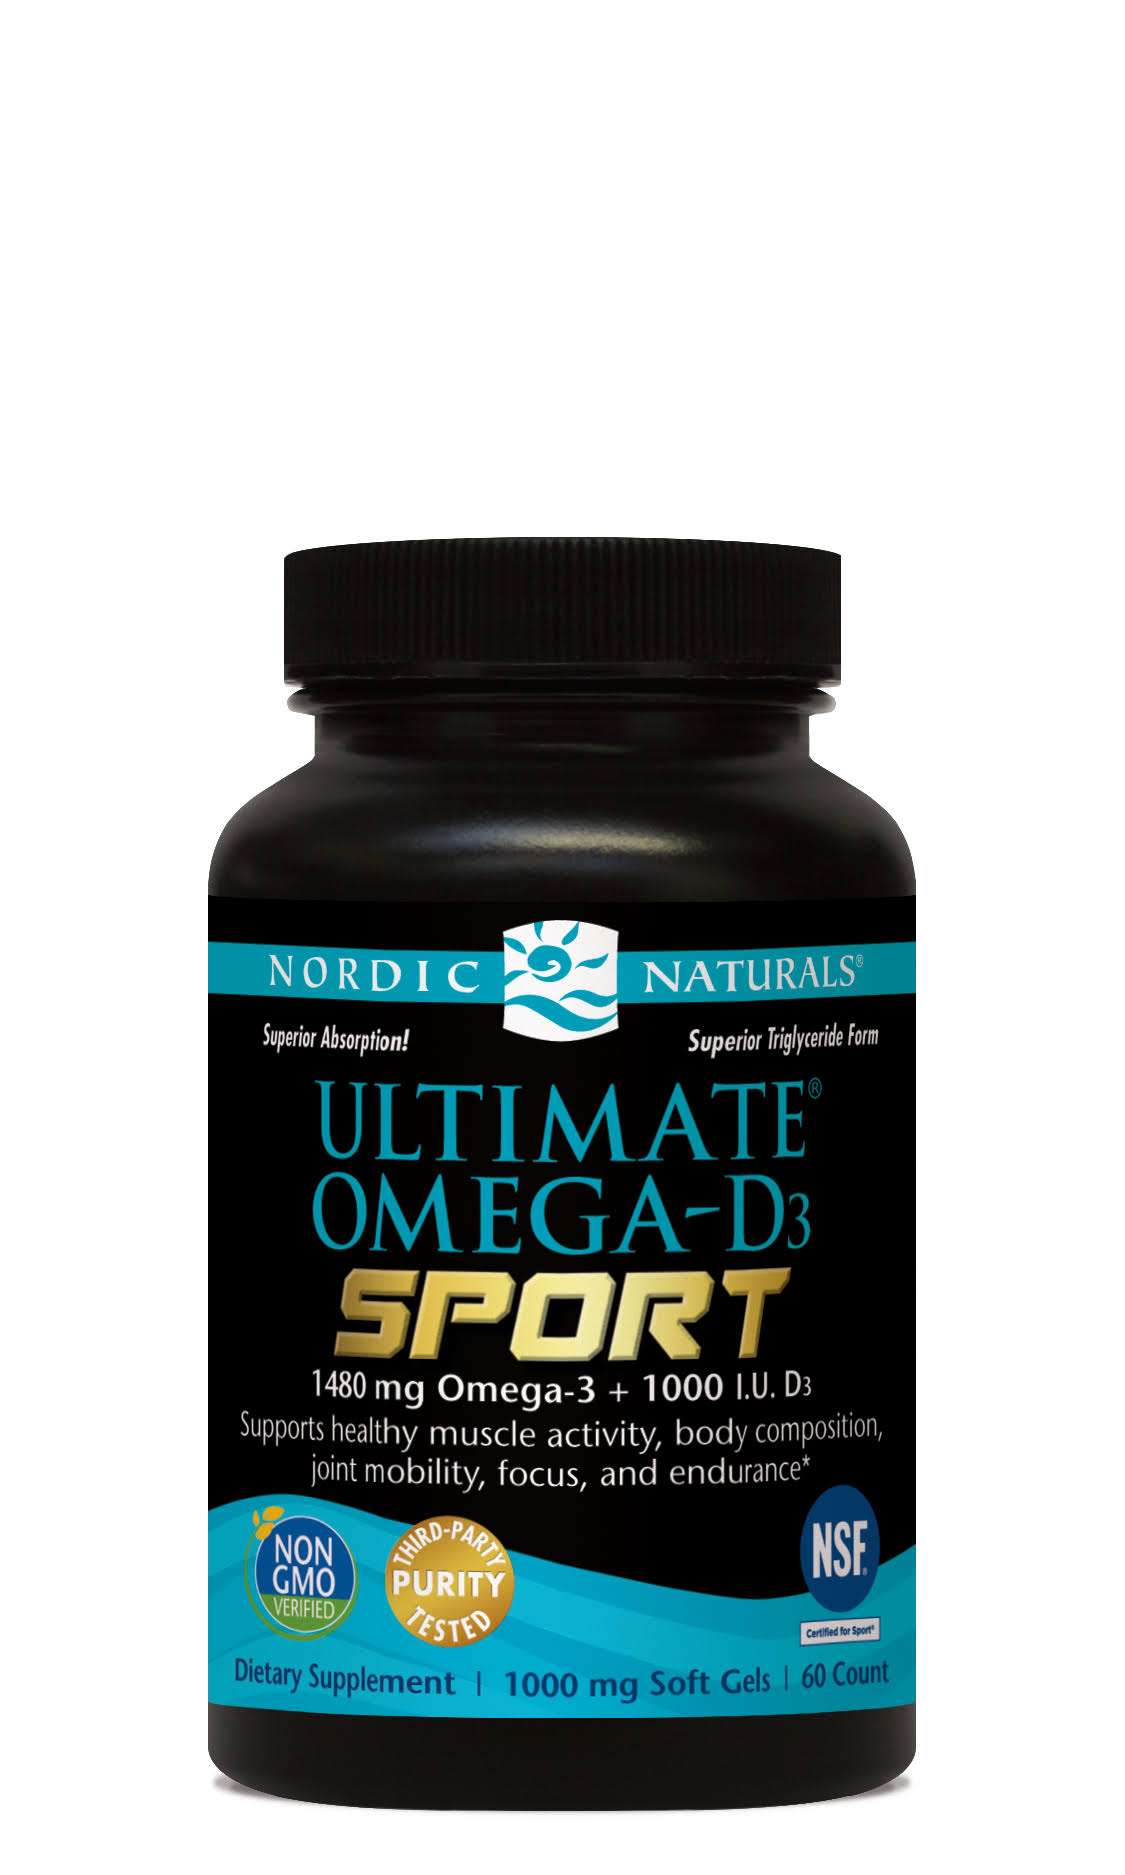 Nordic Naturals Ultimate Omega D3 Sport Dietary Supplement - 60ct